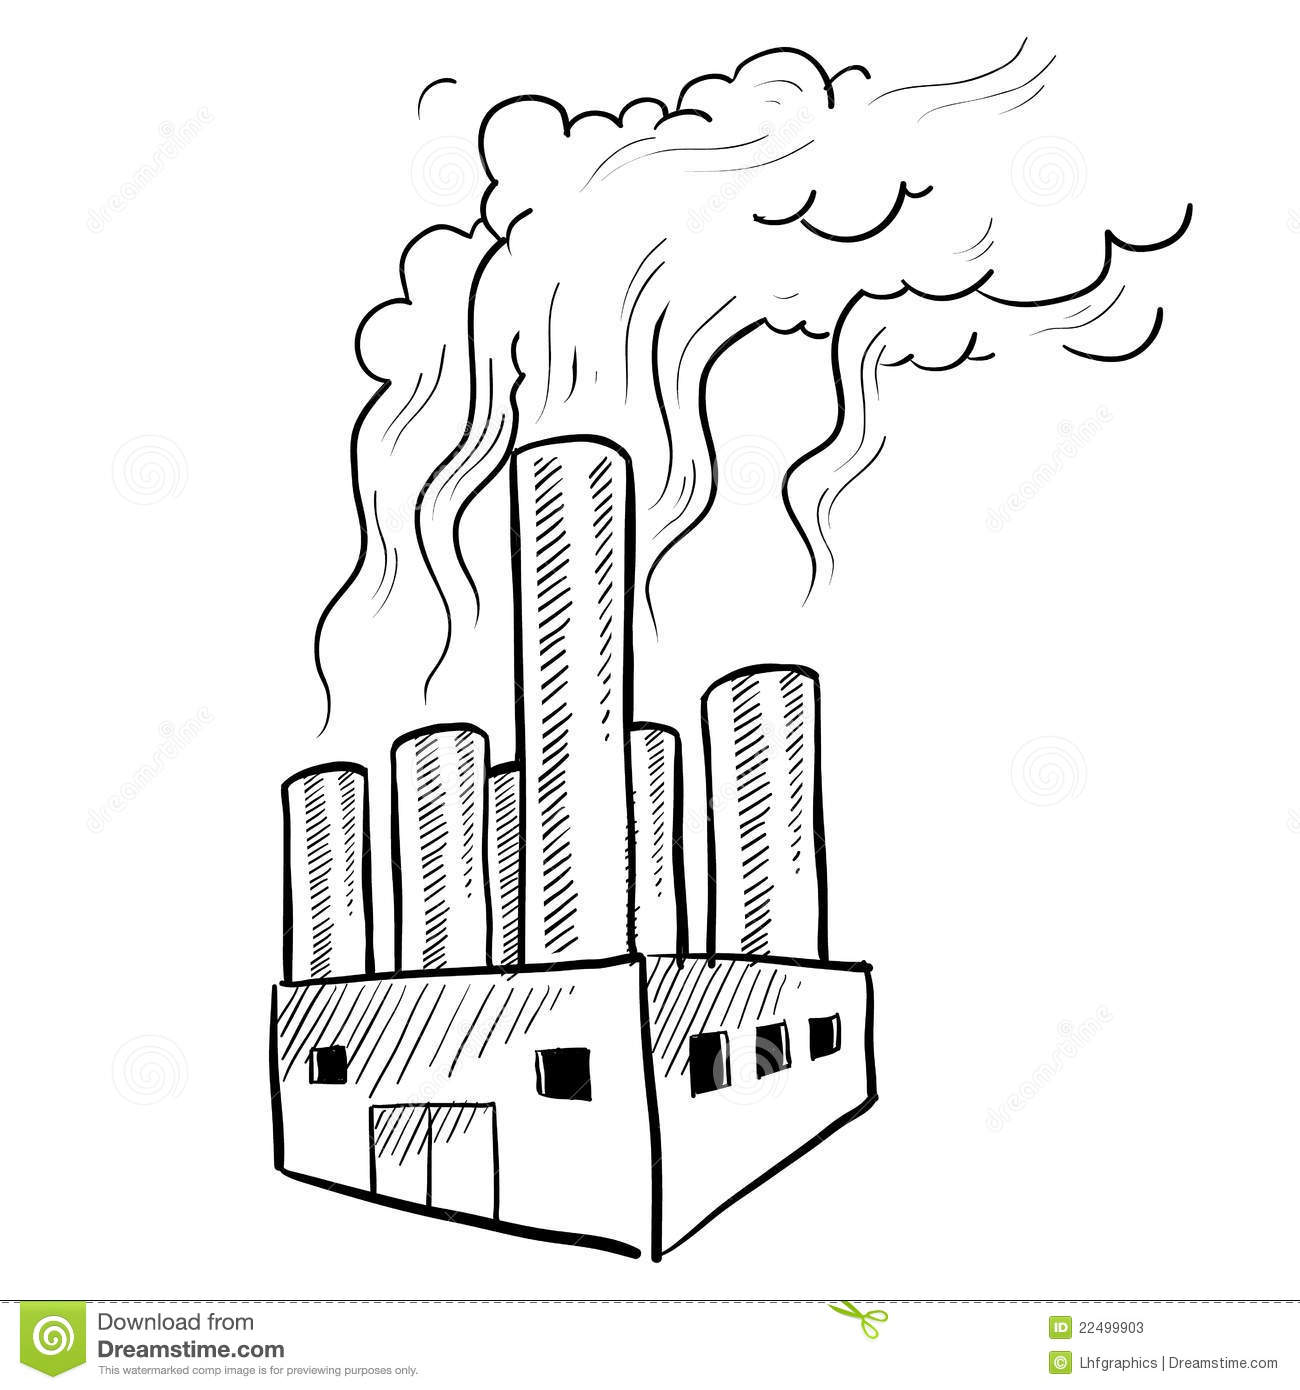 Polluting factory sketch stock vector. Image of warming